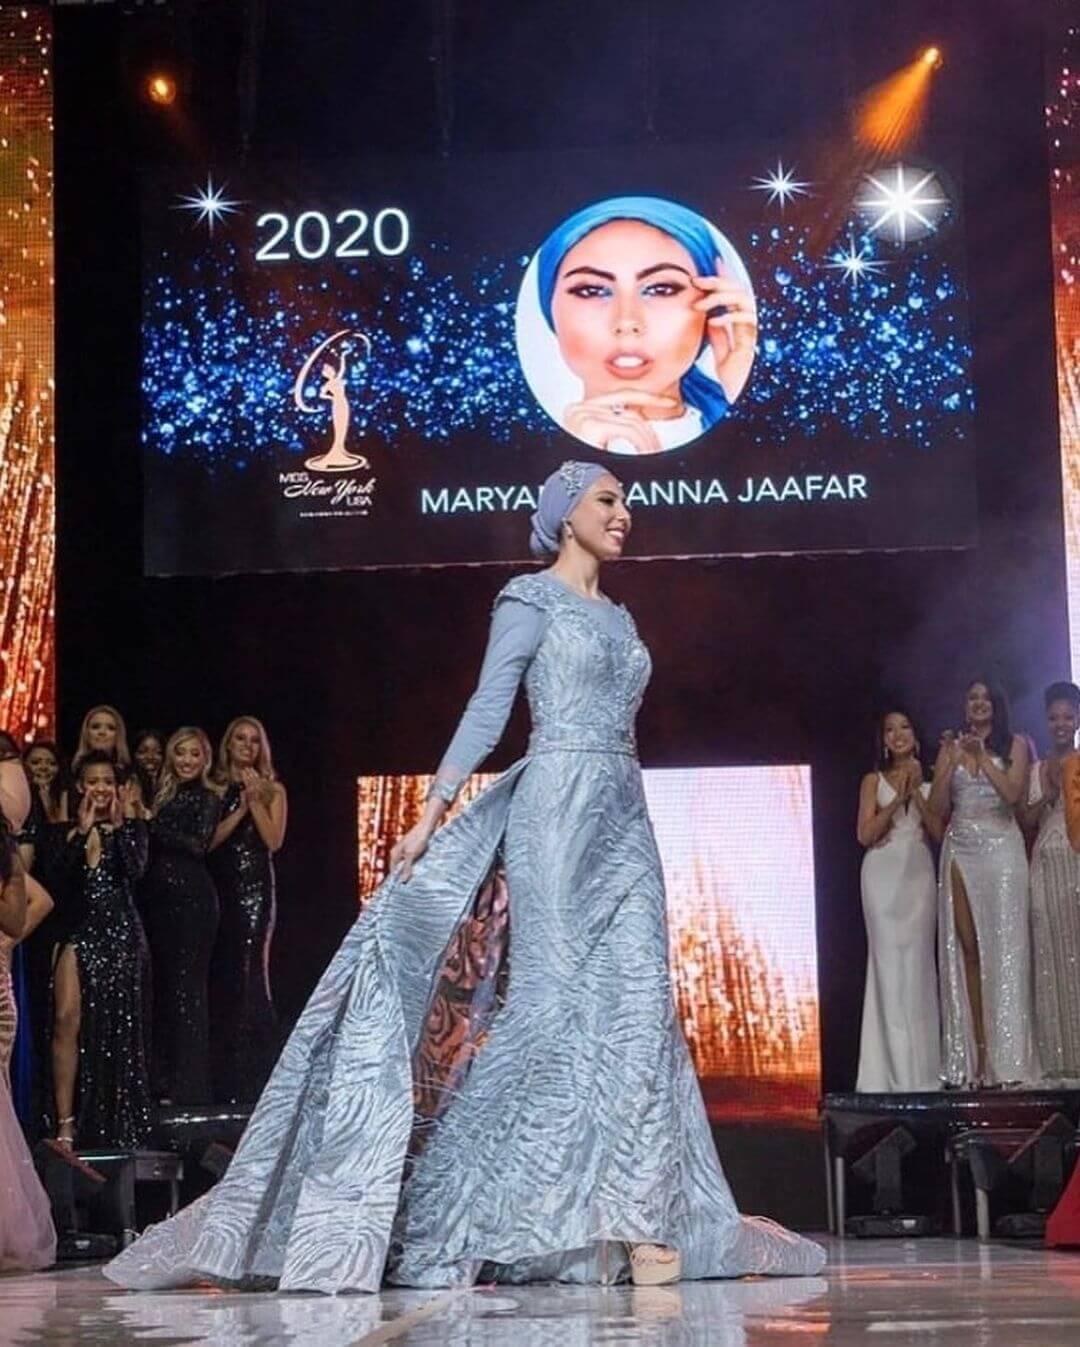 Maraym Jafaar competing in evening gown during Miss New York USA